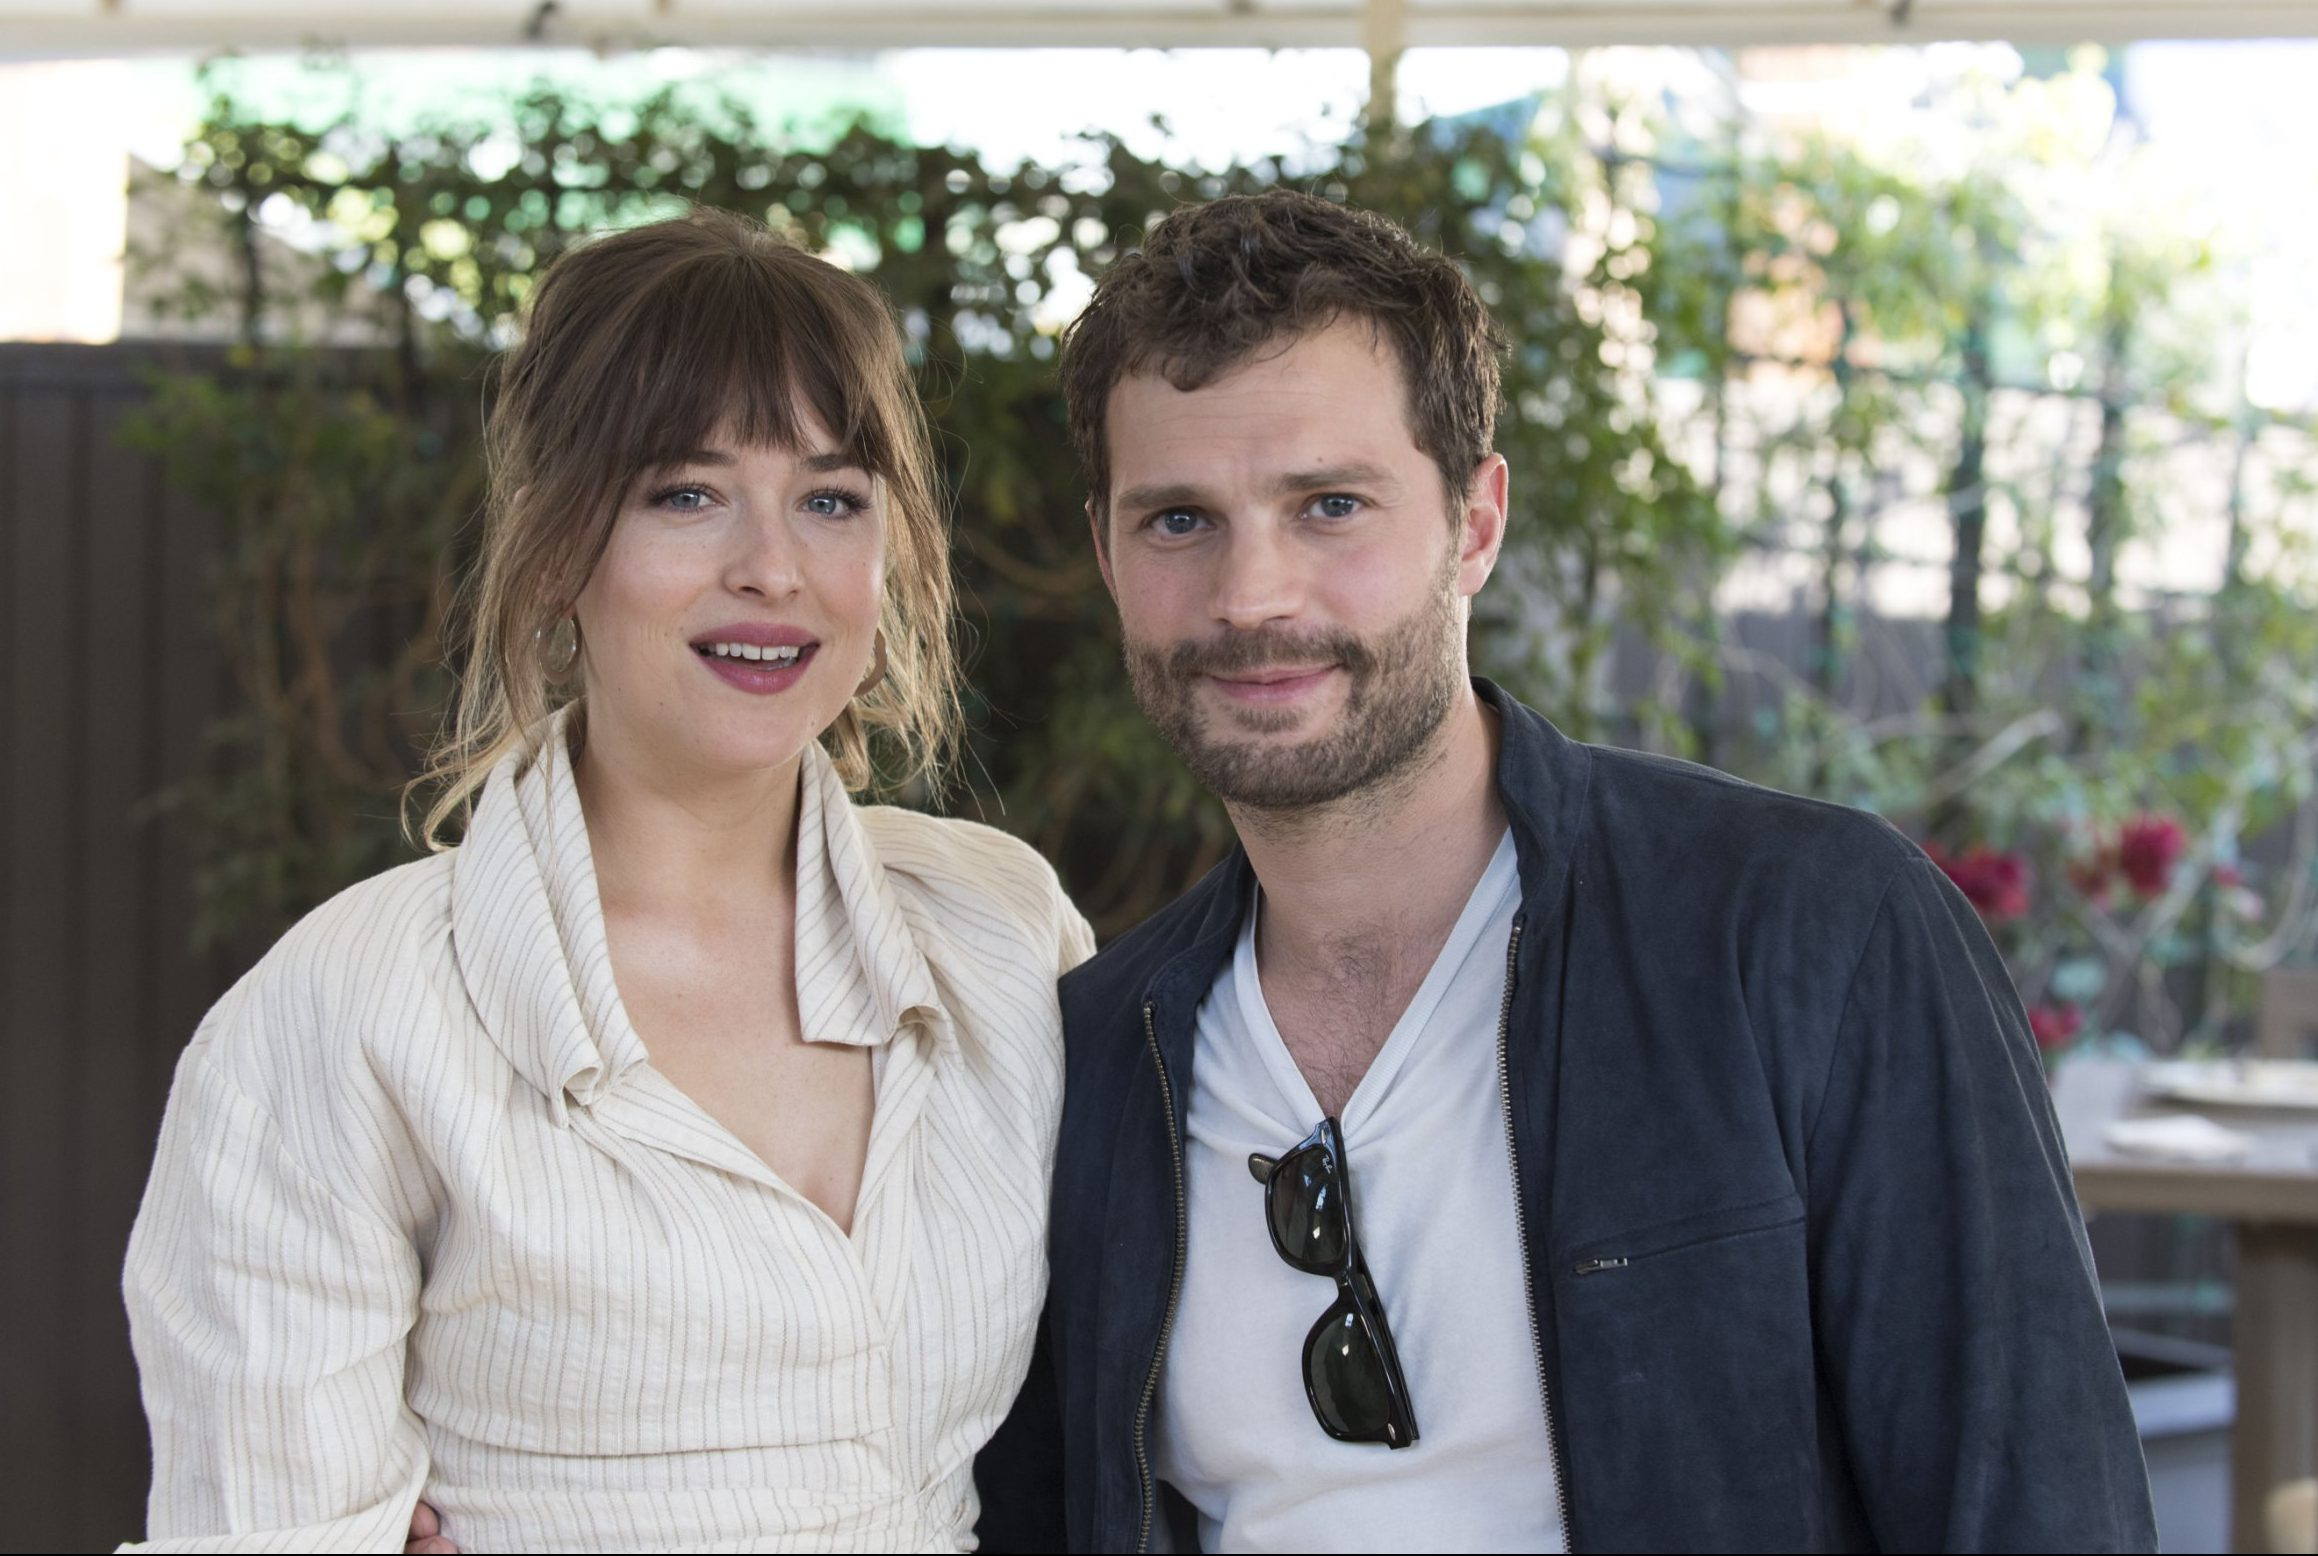 Dakota Johnson teams up with Fifty Shades Freed co-star Jamie Dornan amid Chris Martin romance rumours